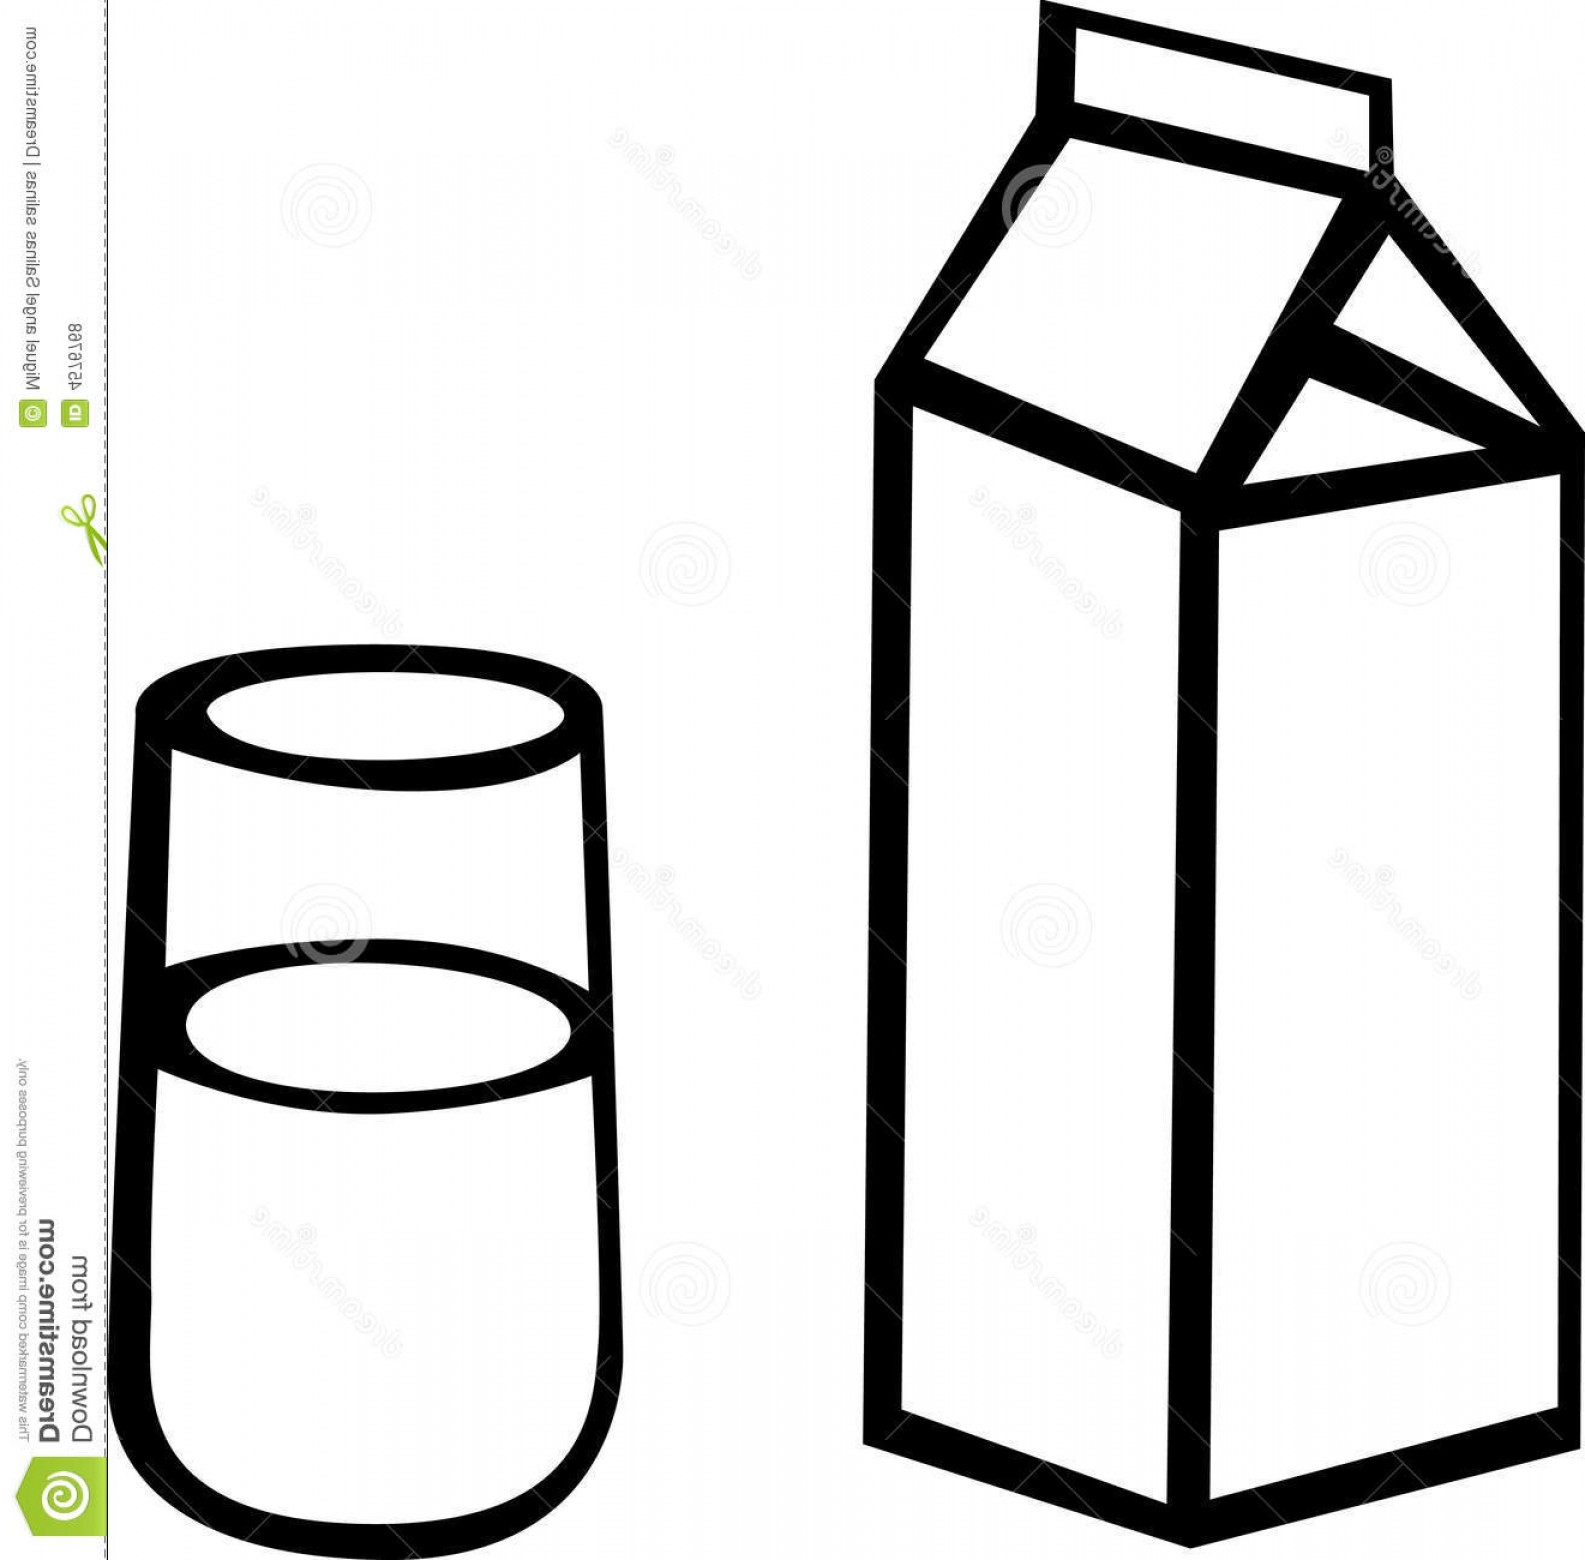 Vector Milk Container: Royalty Free Stock Photos Milk Carton Glass Vector Illustration Image